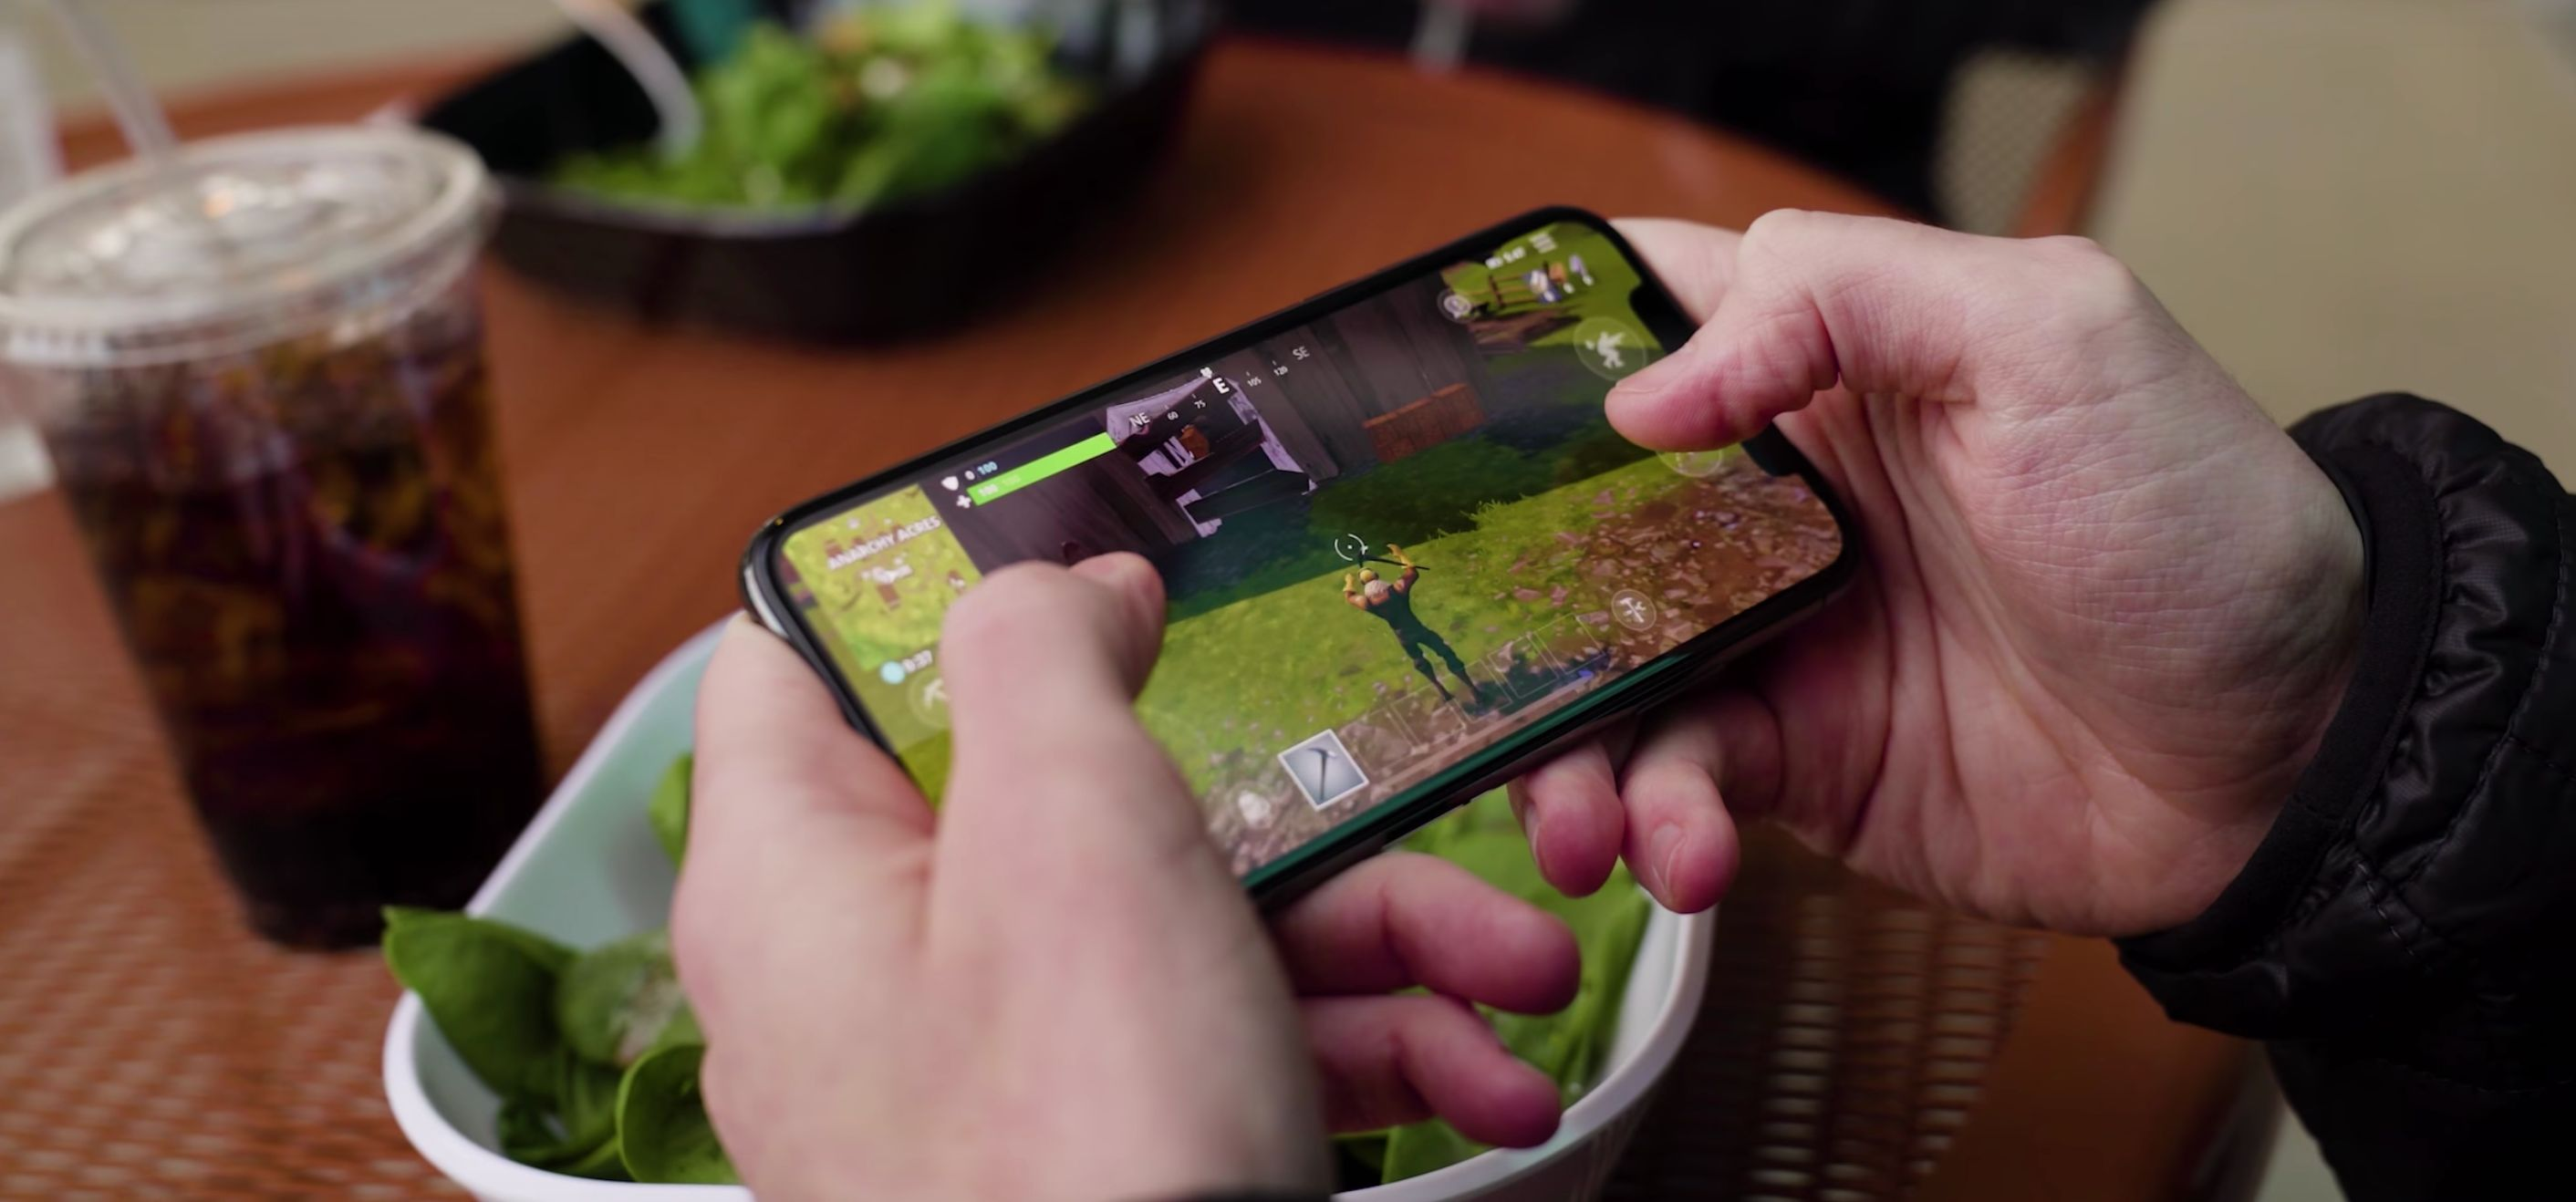 Fortnite is great, but it coms with in-app purchases and the ability to chat to